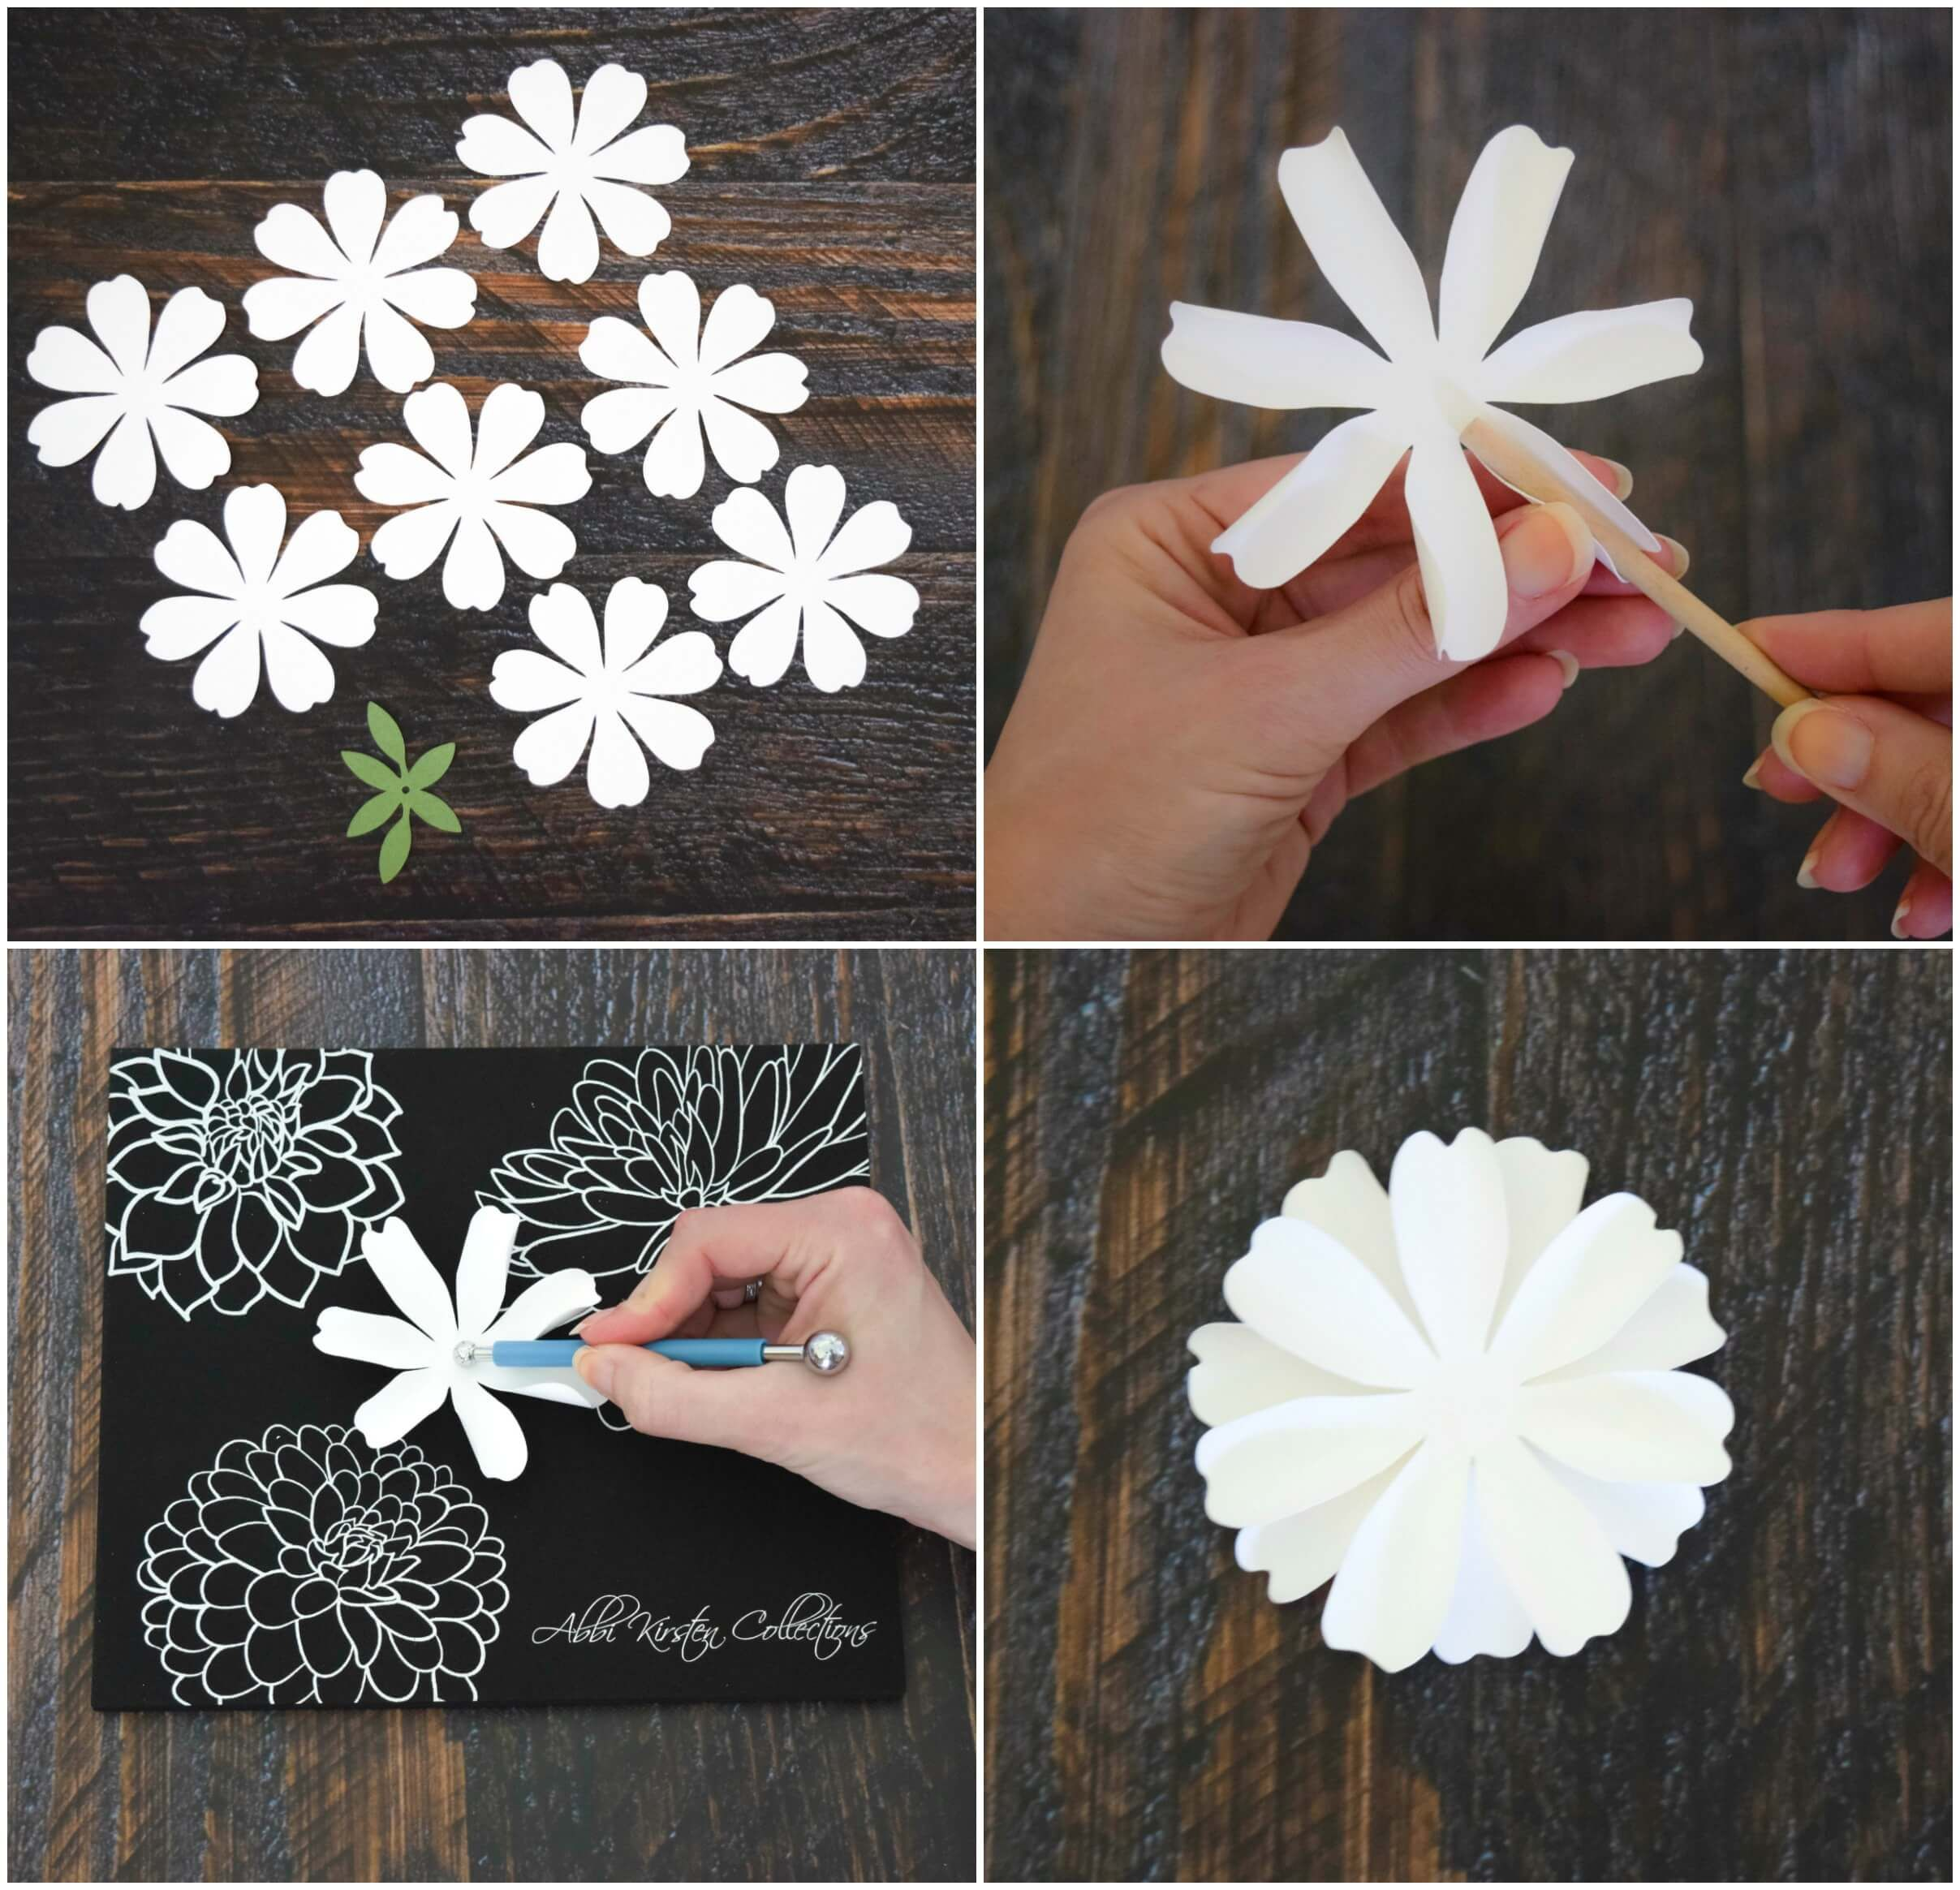 How To Make Paper Dahlia Flowers Small Paper Flower Tutorial Paper Flower Tutorial Paper Dahlia Paper Flowers